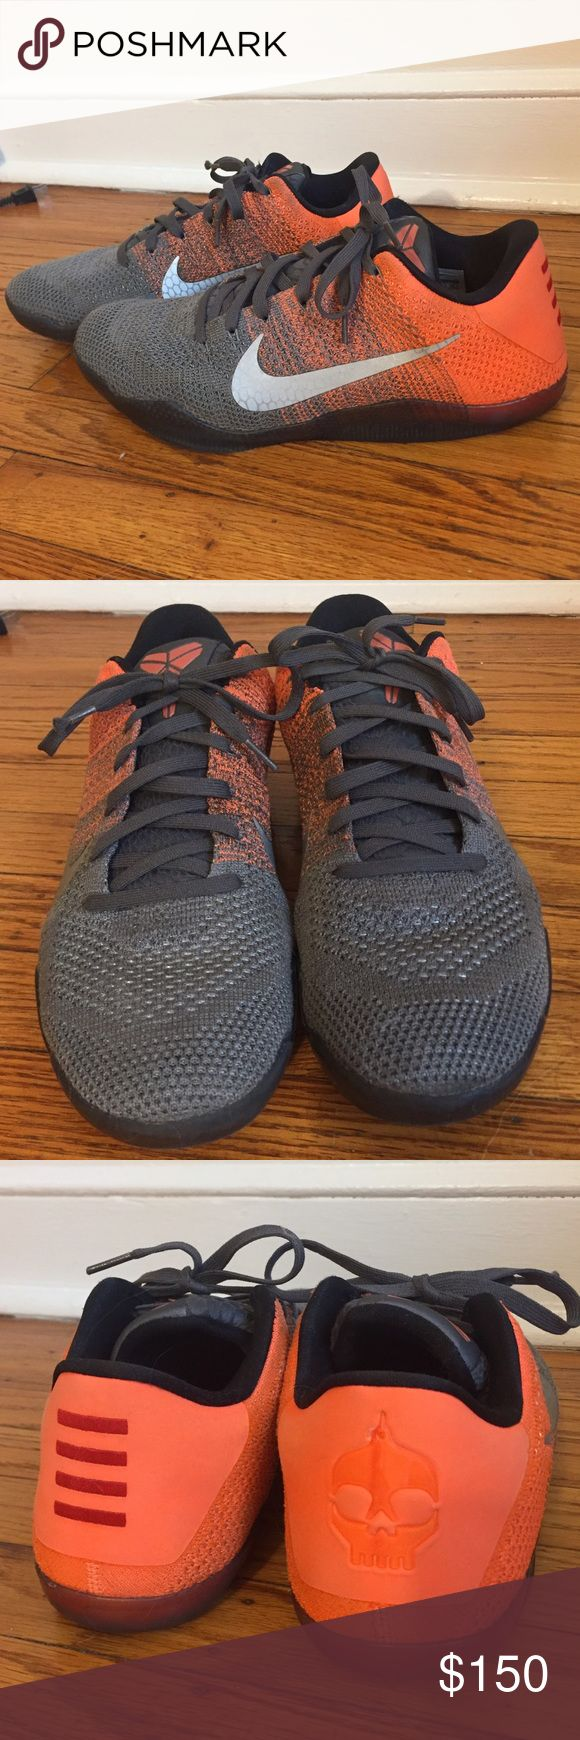 Nike Kobe 11 Elite Men's Low Nike Kobe 11 Elite Low men's sneakers. Worn a handful of times indoors for basketball, in great condition! Zoom soles. Smoke free home. Open to reasonable offers! Nike Shoes Athletic Shoes